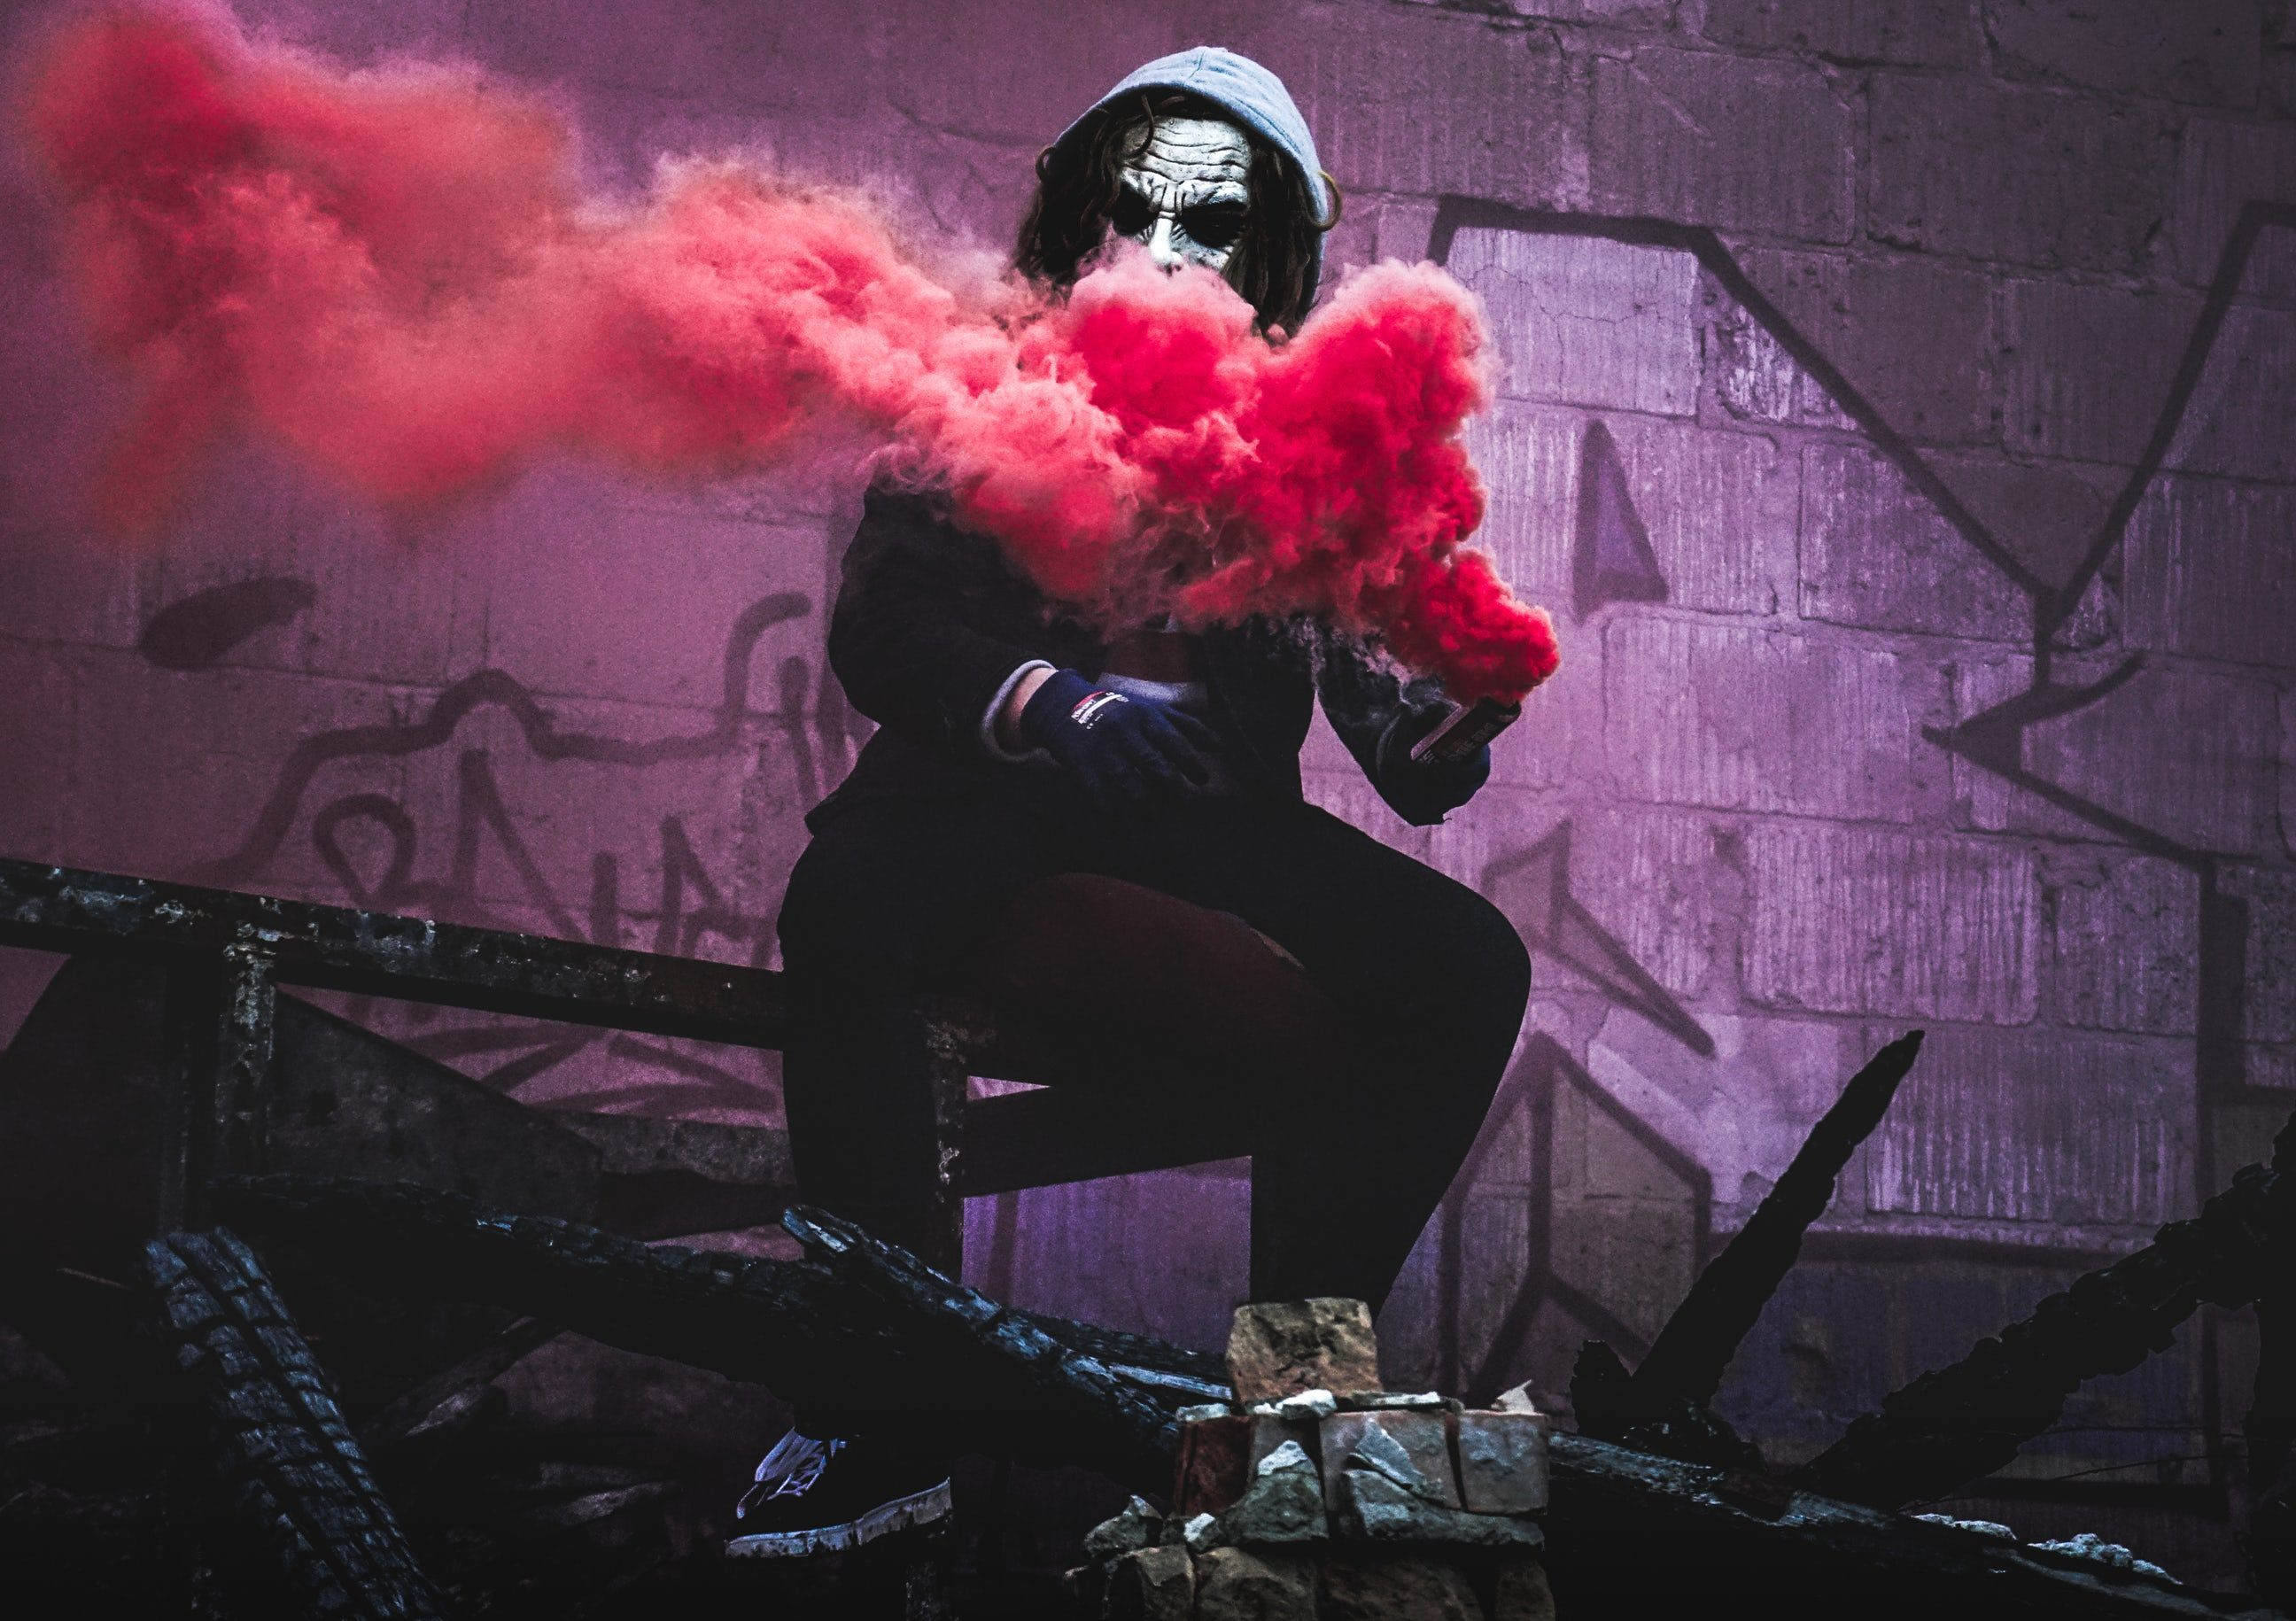 Joker Pictures Download Free Images On Unsplash Joker Wallpapers Joker Images Joker Wallpaper